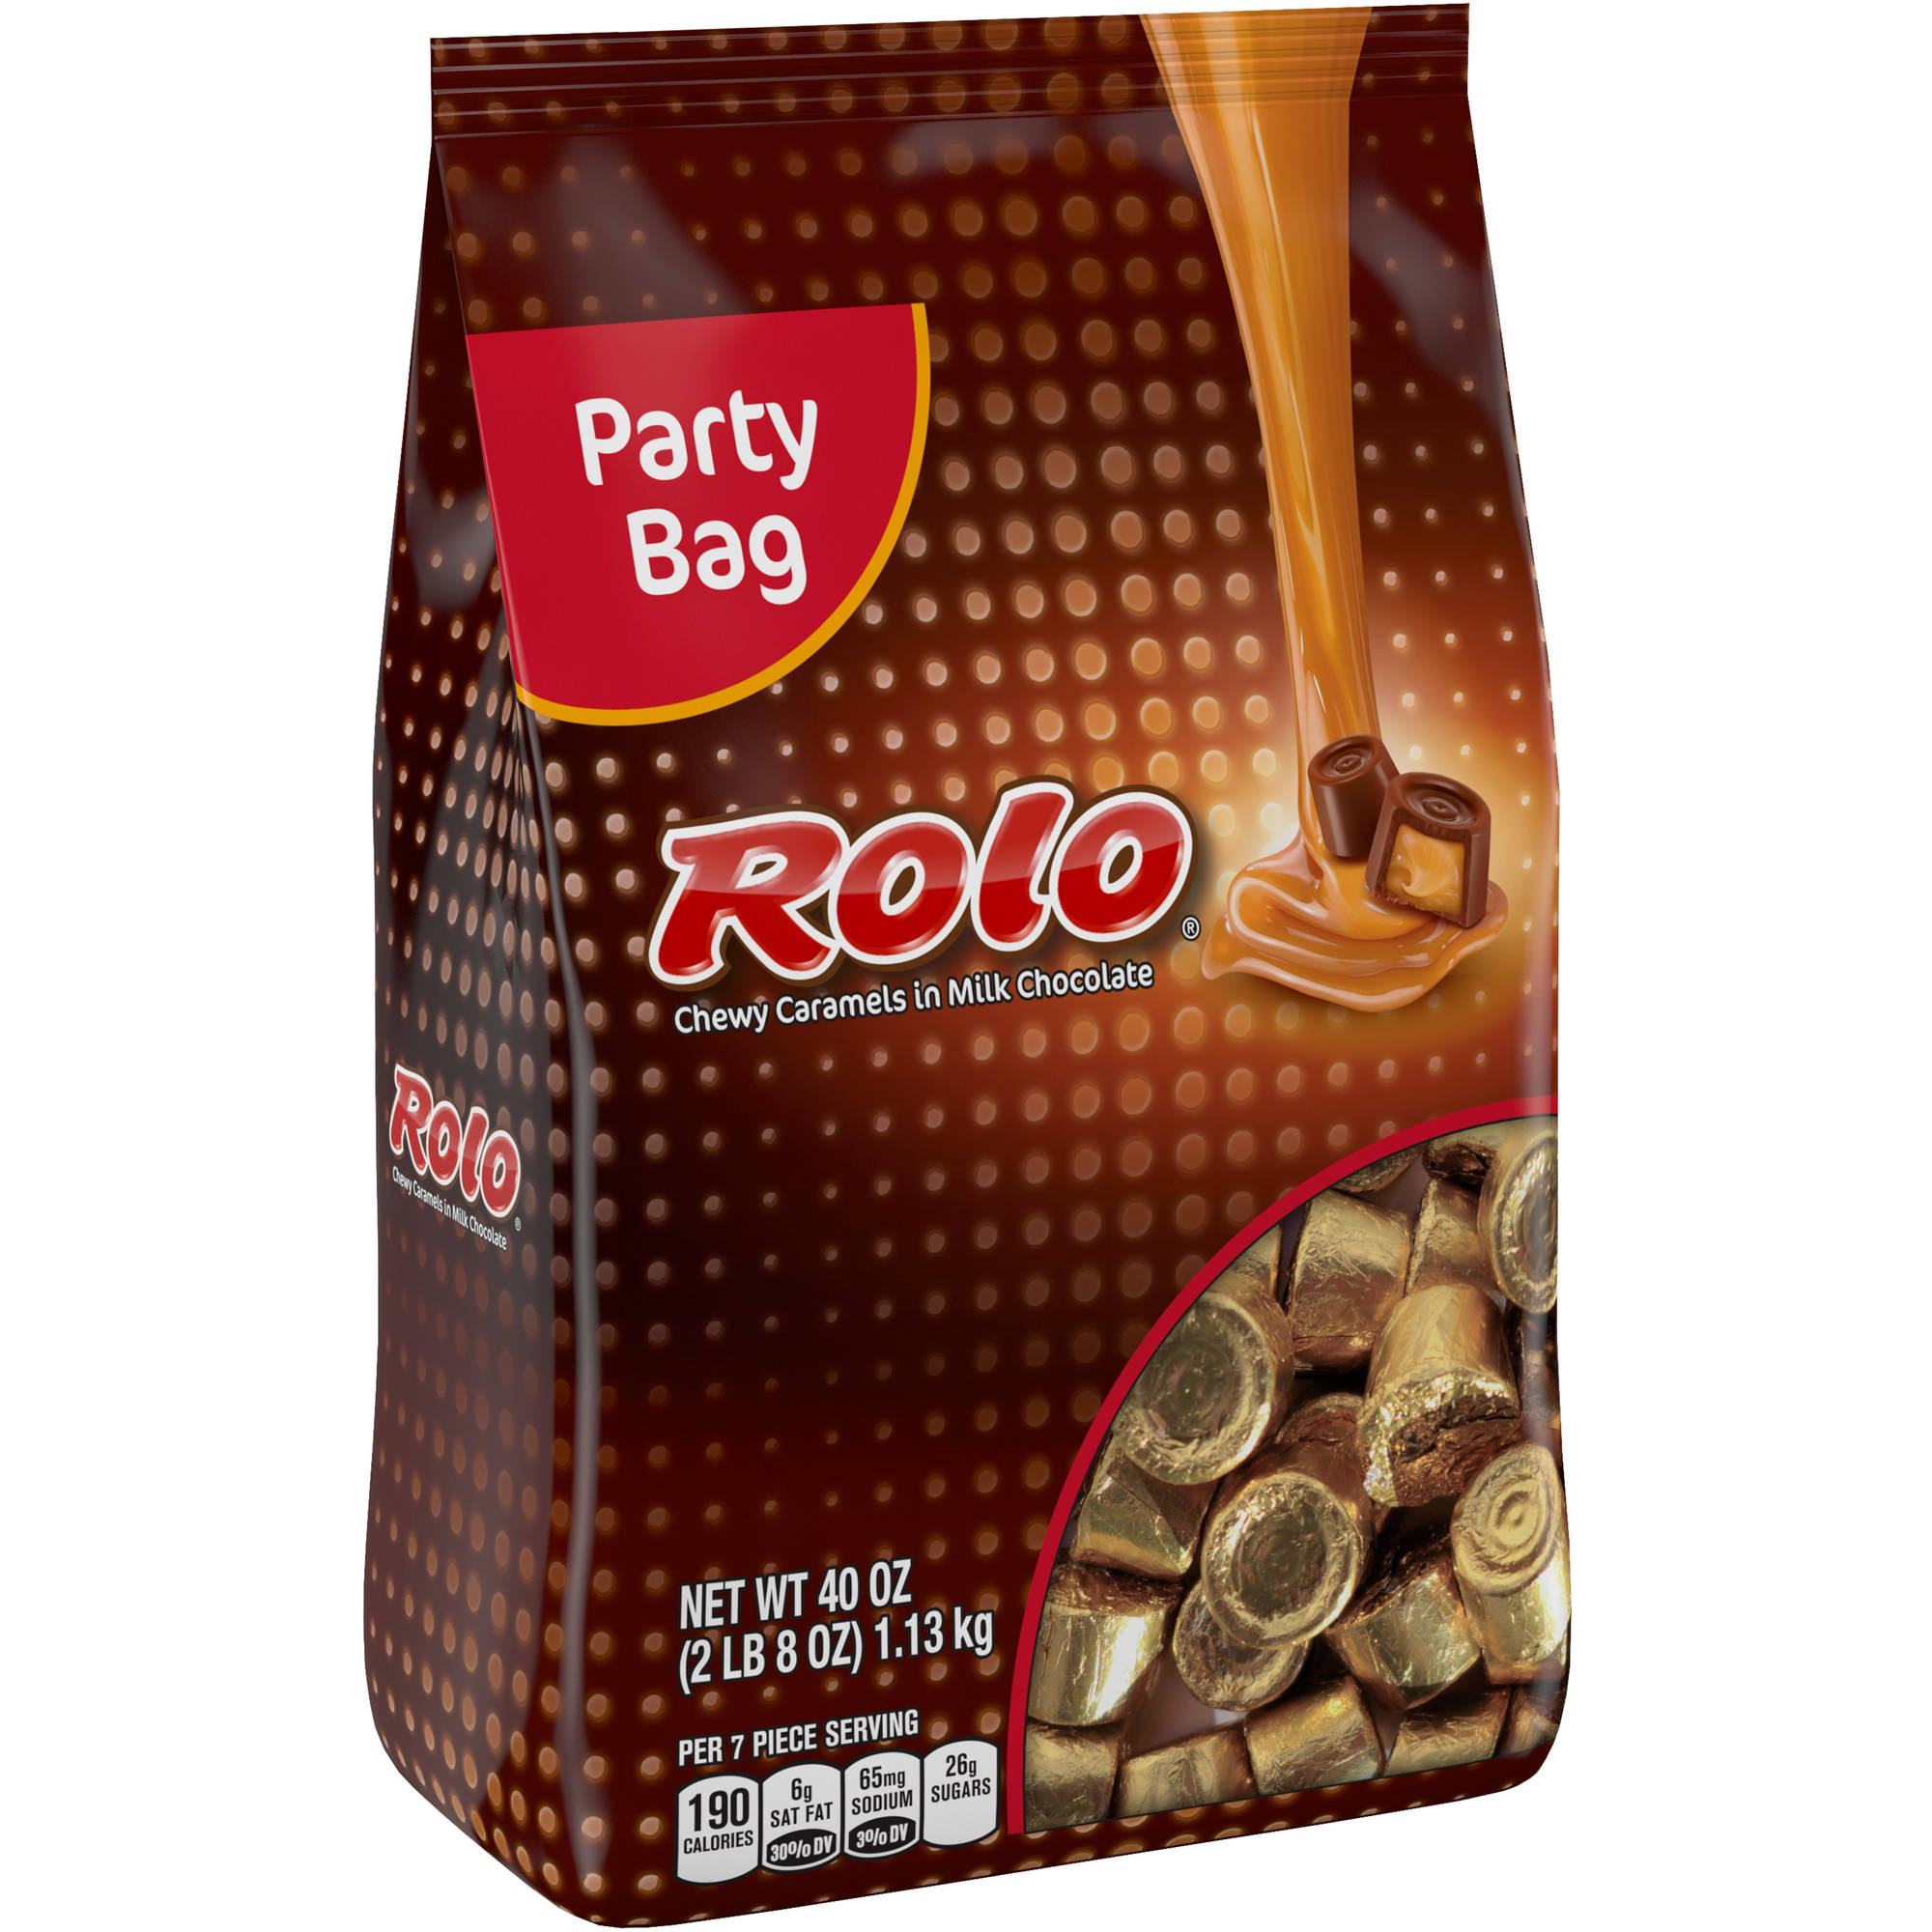 Rolo�� Chewy Caramels in Milk Chocolate Candy, 40 oz